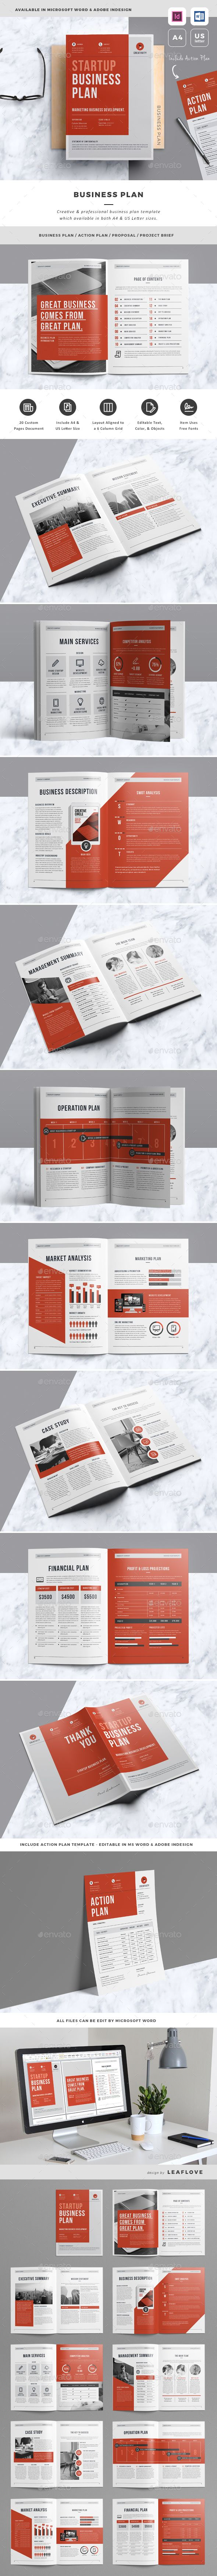 Business Plan — InDesign INDD #presentation #design • Download ➝ https://graphicriver.net/item/business-plan/19540224?ref=pxcr